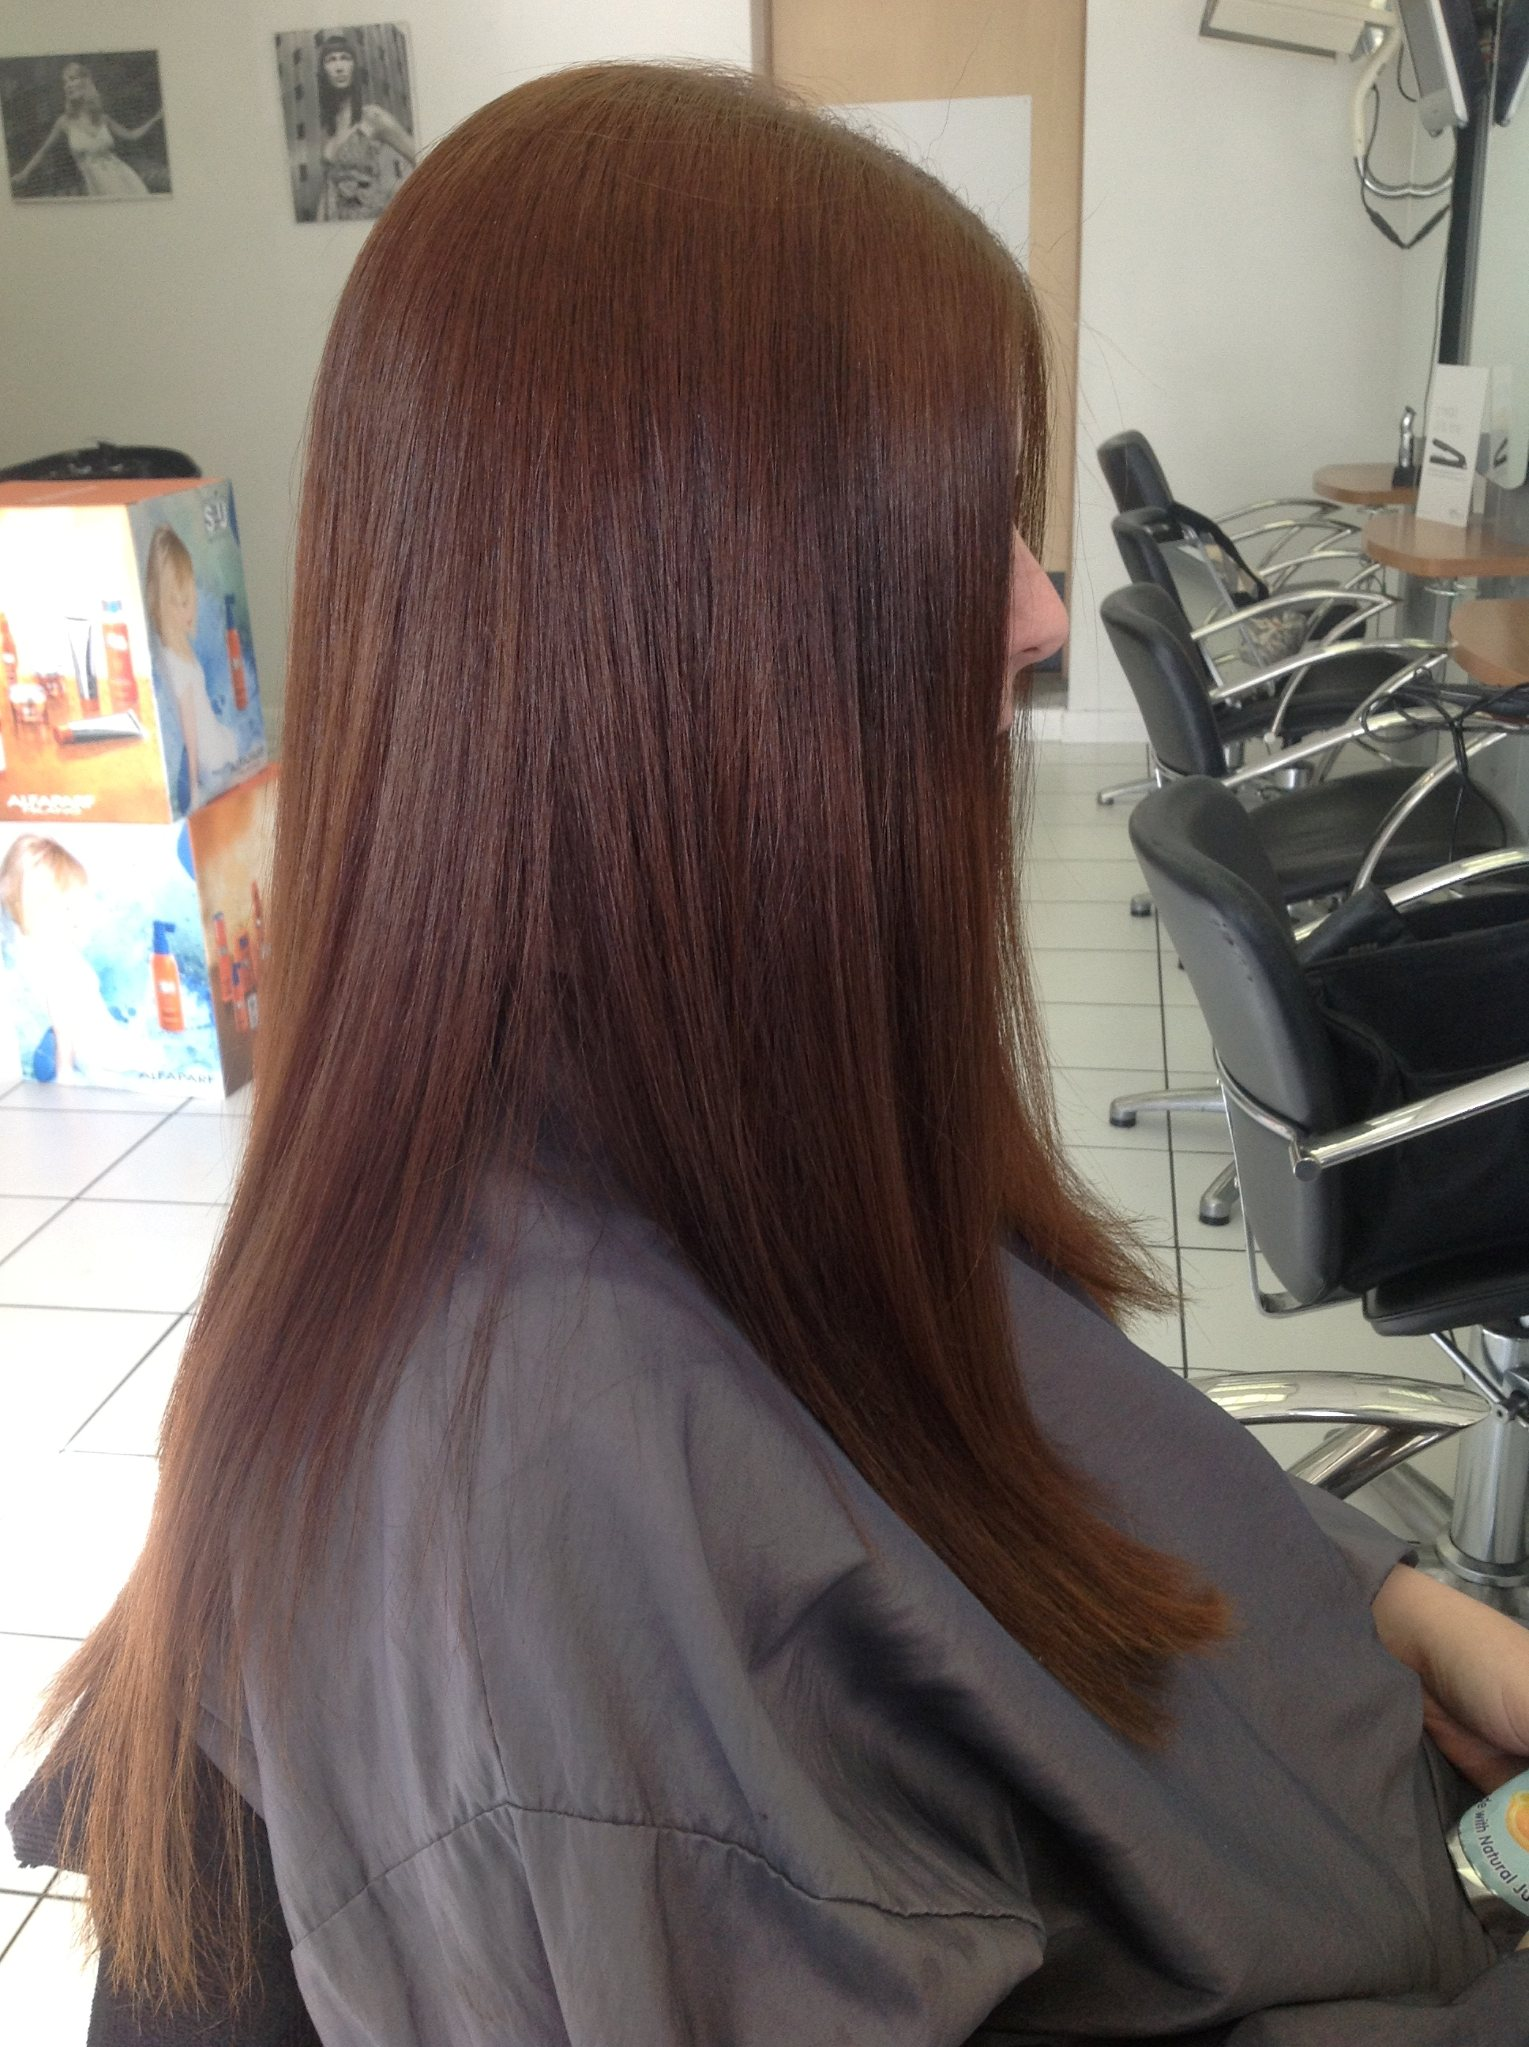 Brazilian Blow Dry - After